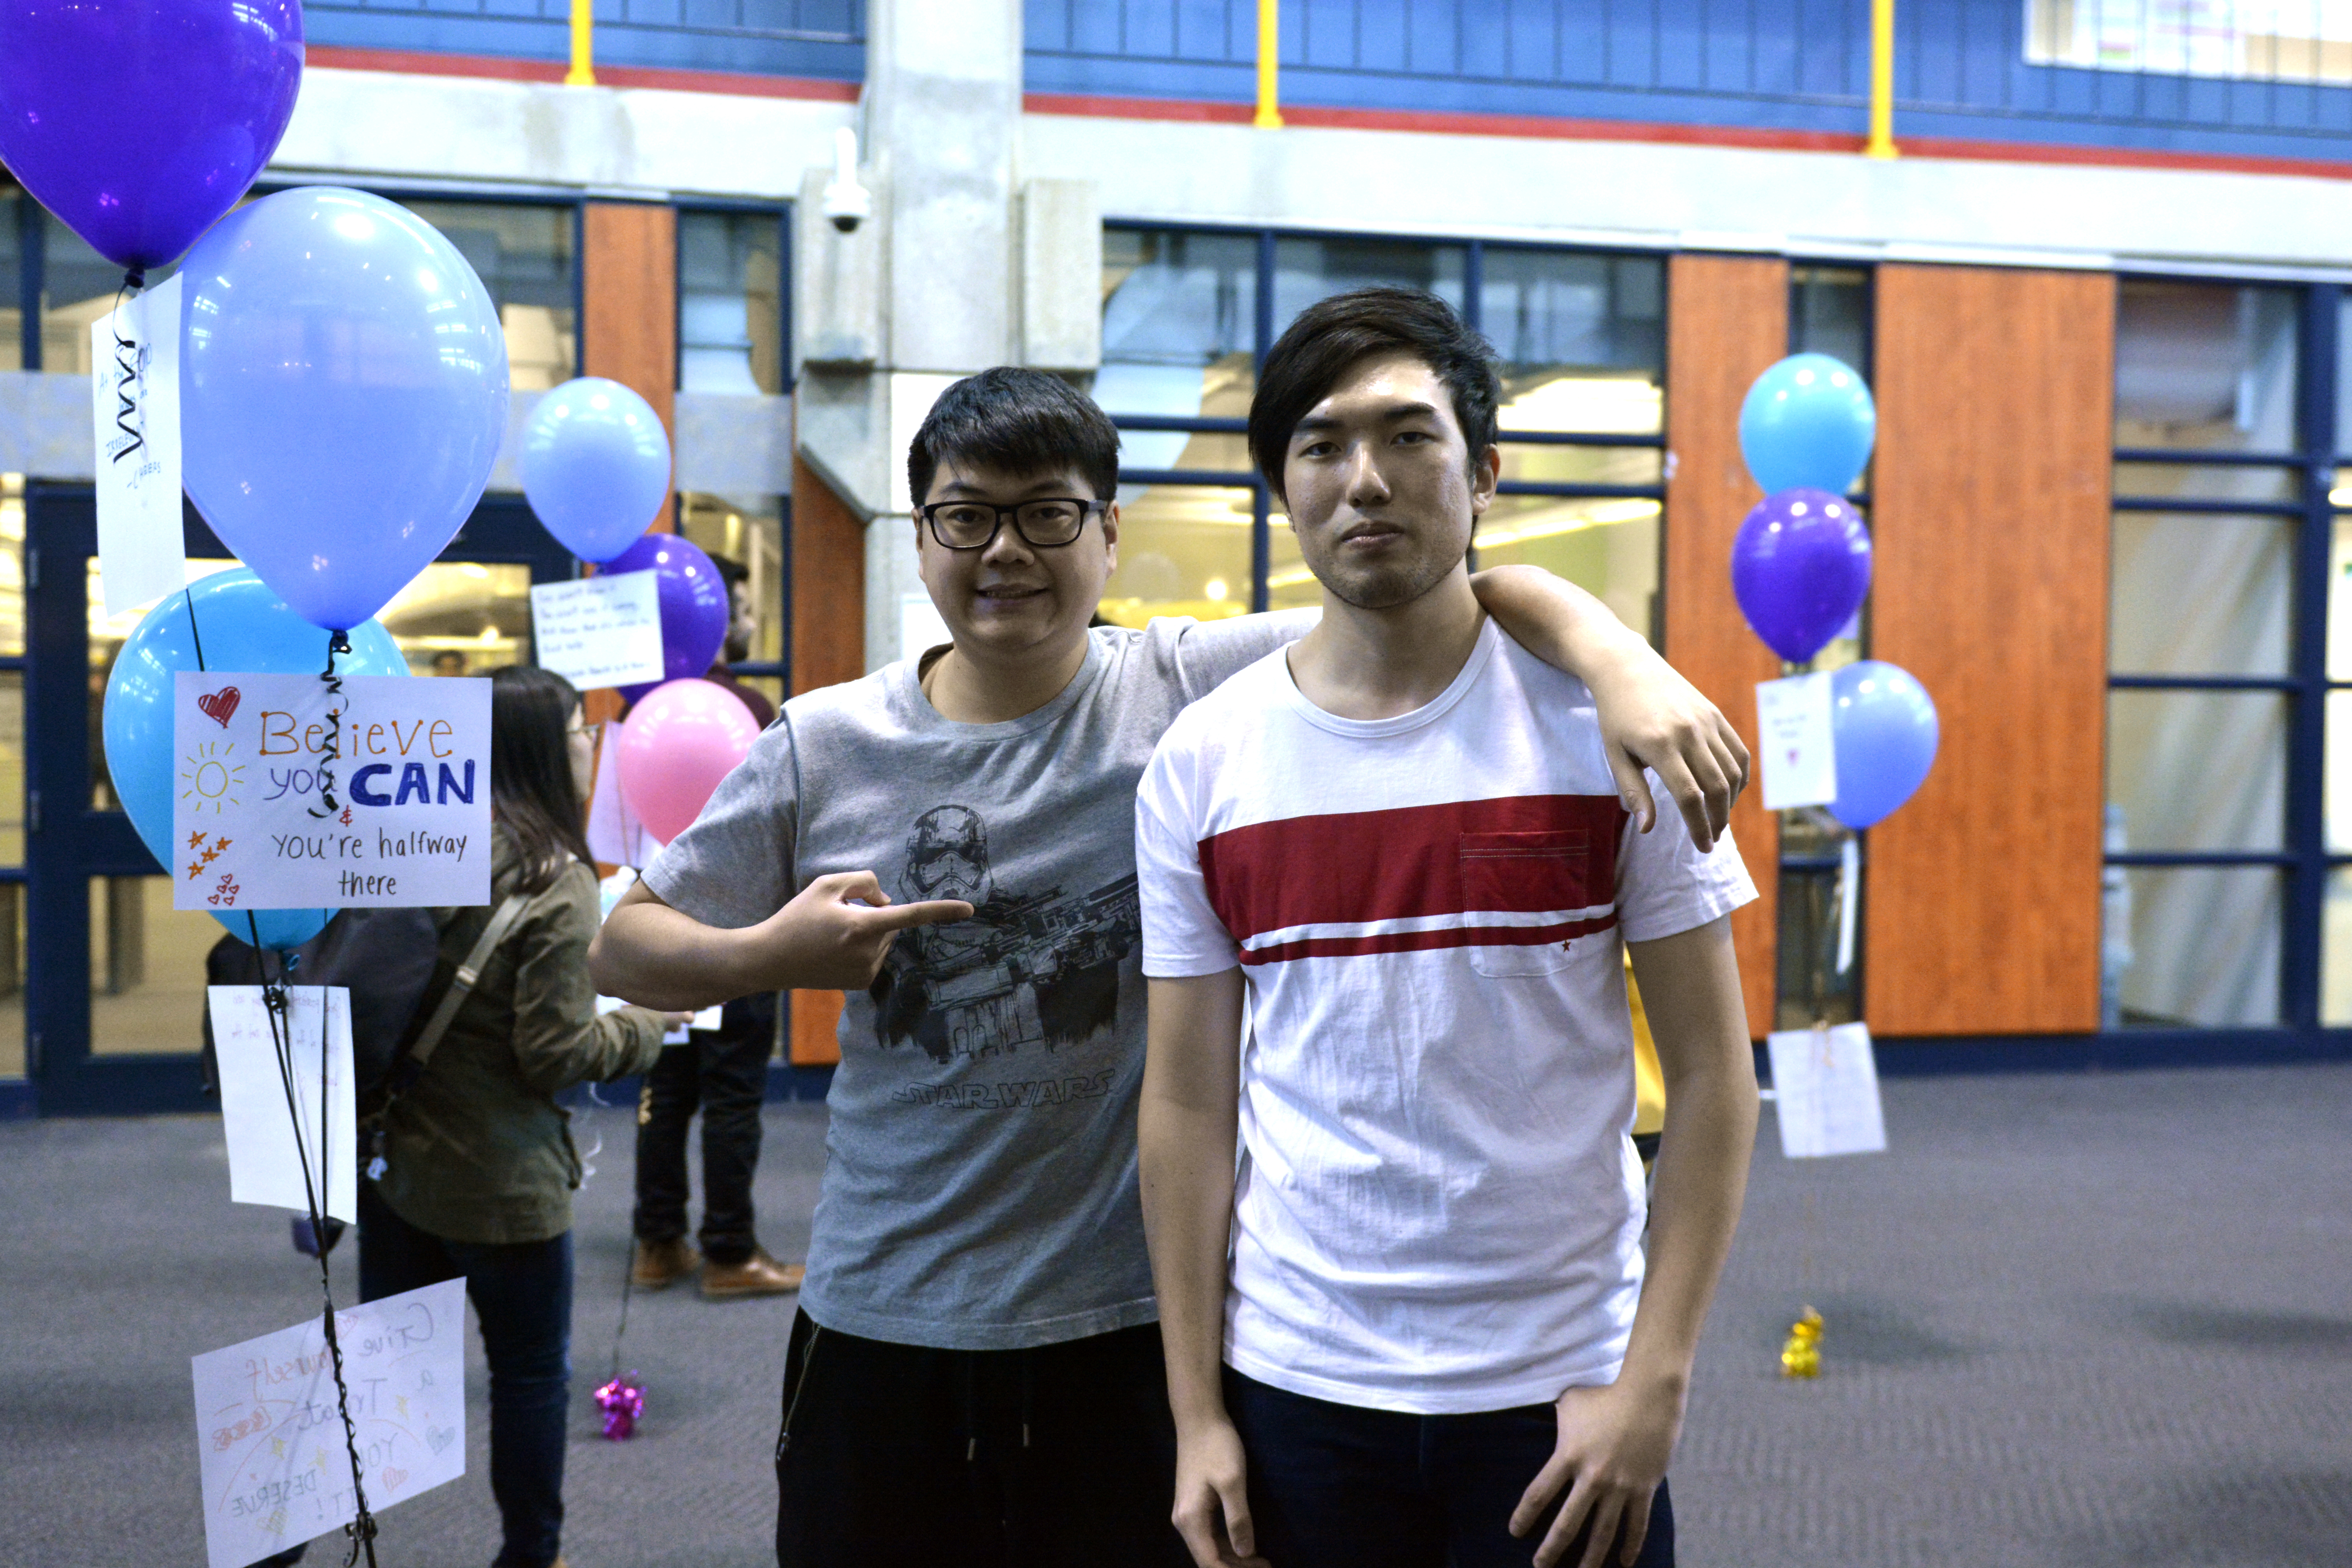 Andrew Cen (left) and Art Tso (right) put the mental health balloon project together.